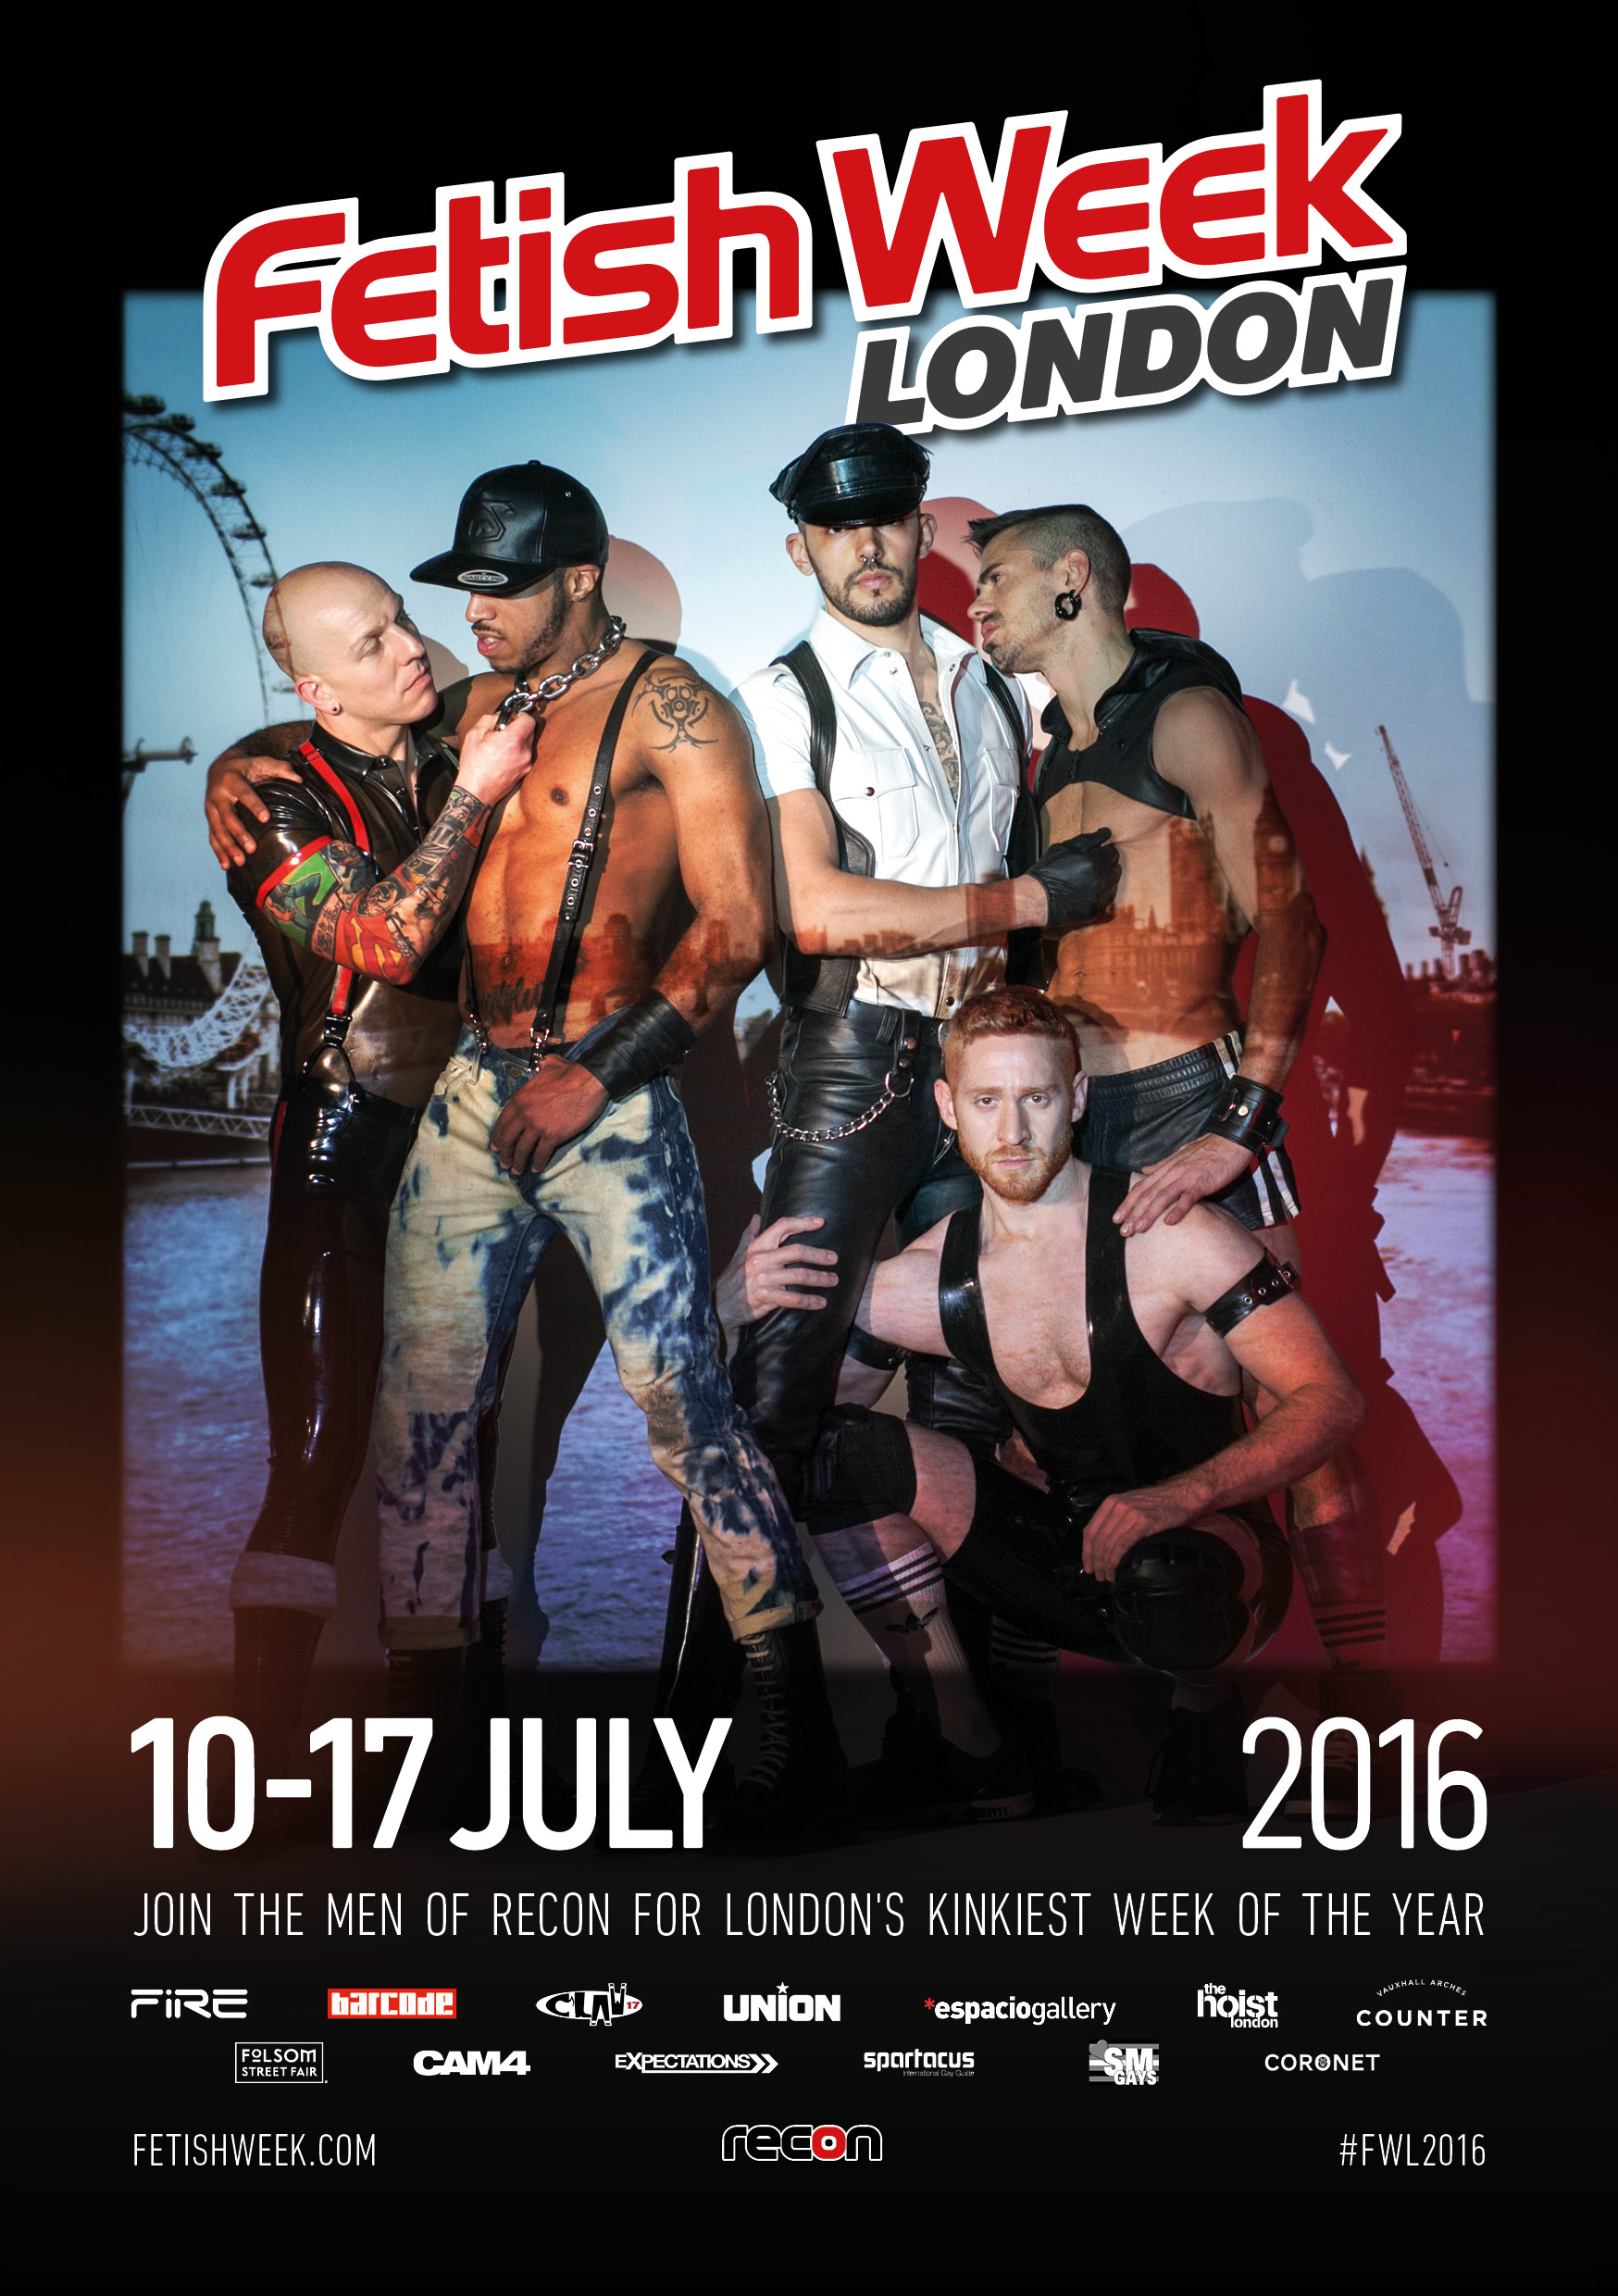 CAM4 Sponsors Fetish Week London 2016!